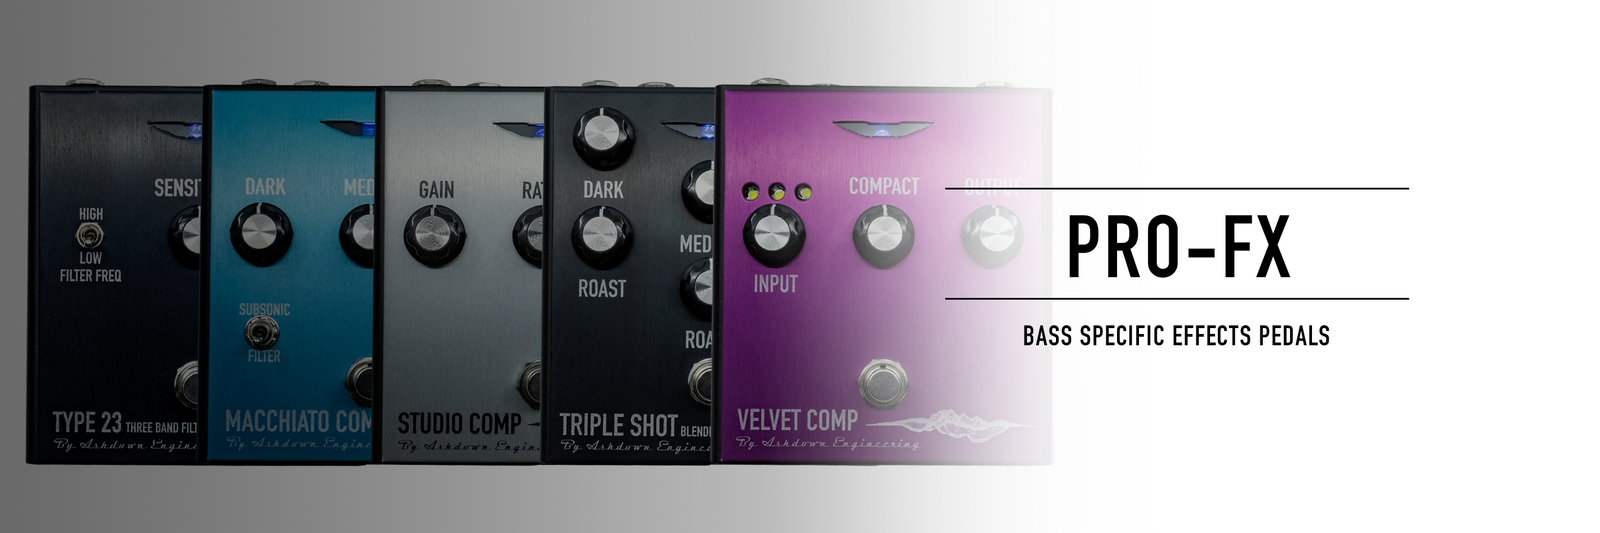 Ashdown PRO FX - New Dedicated Bass Effects Pedal Range